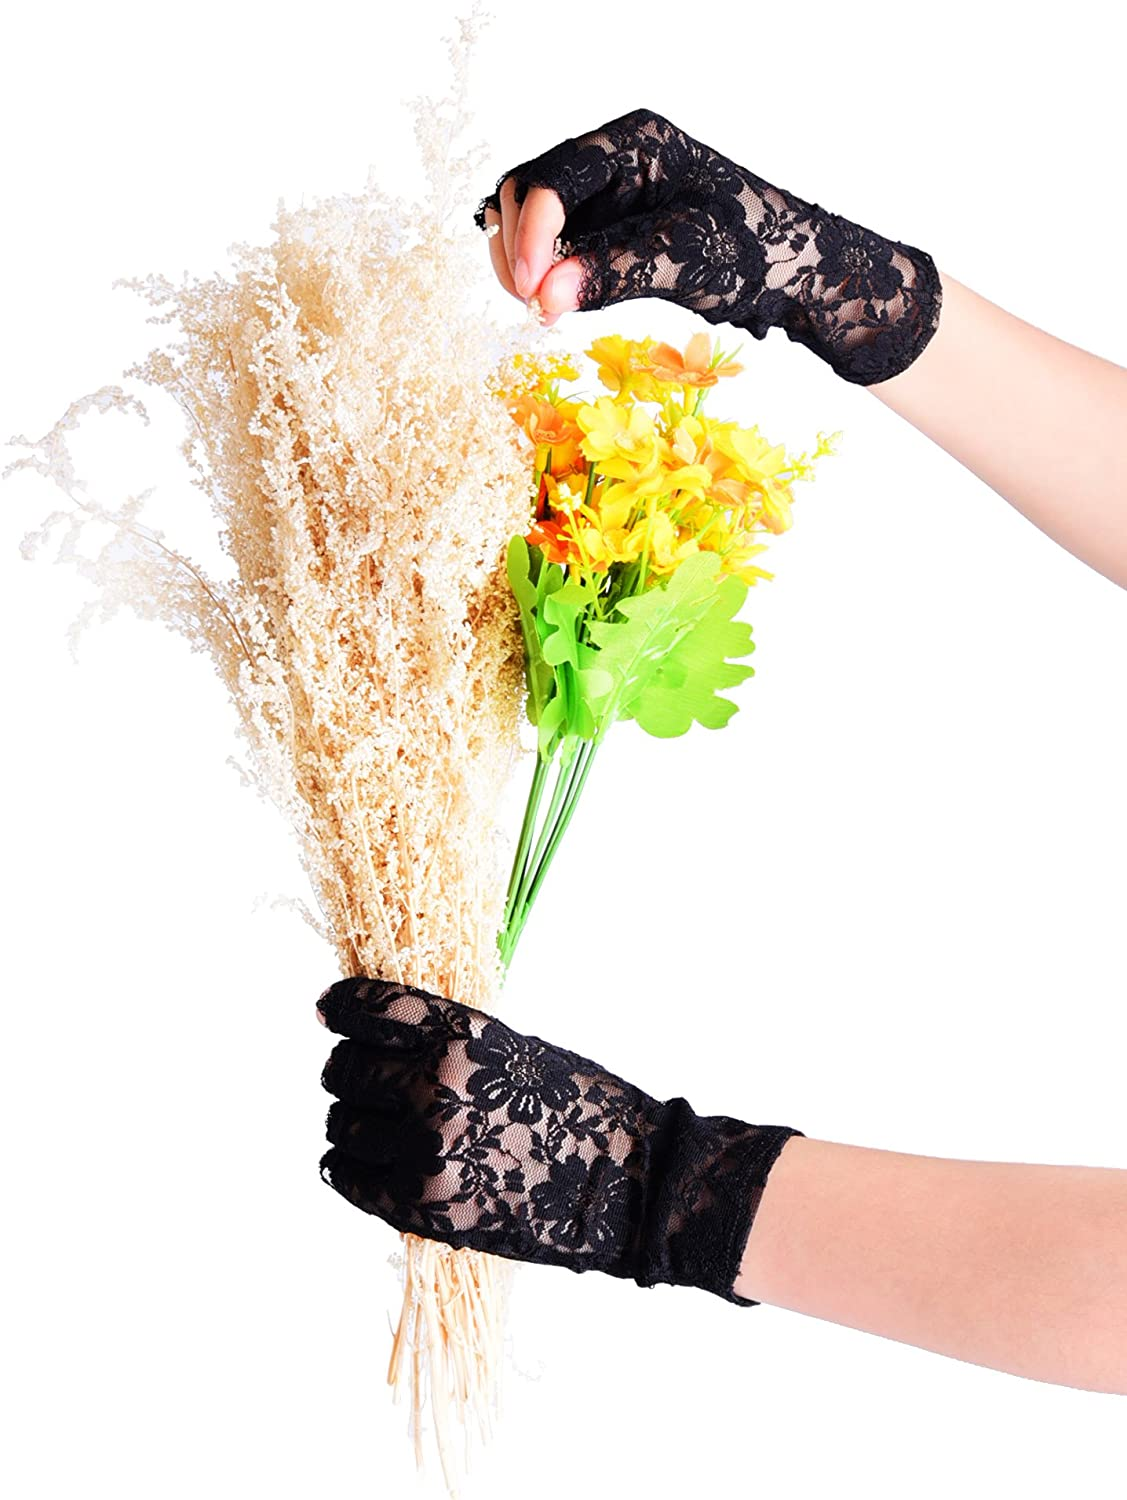 BBTO 3 Pairs 80s Lace Fingerless Gloves Costume Gloves for Christmas Accessory